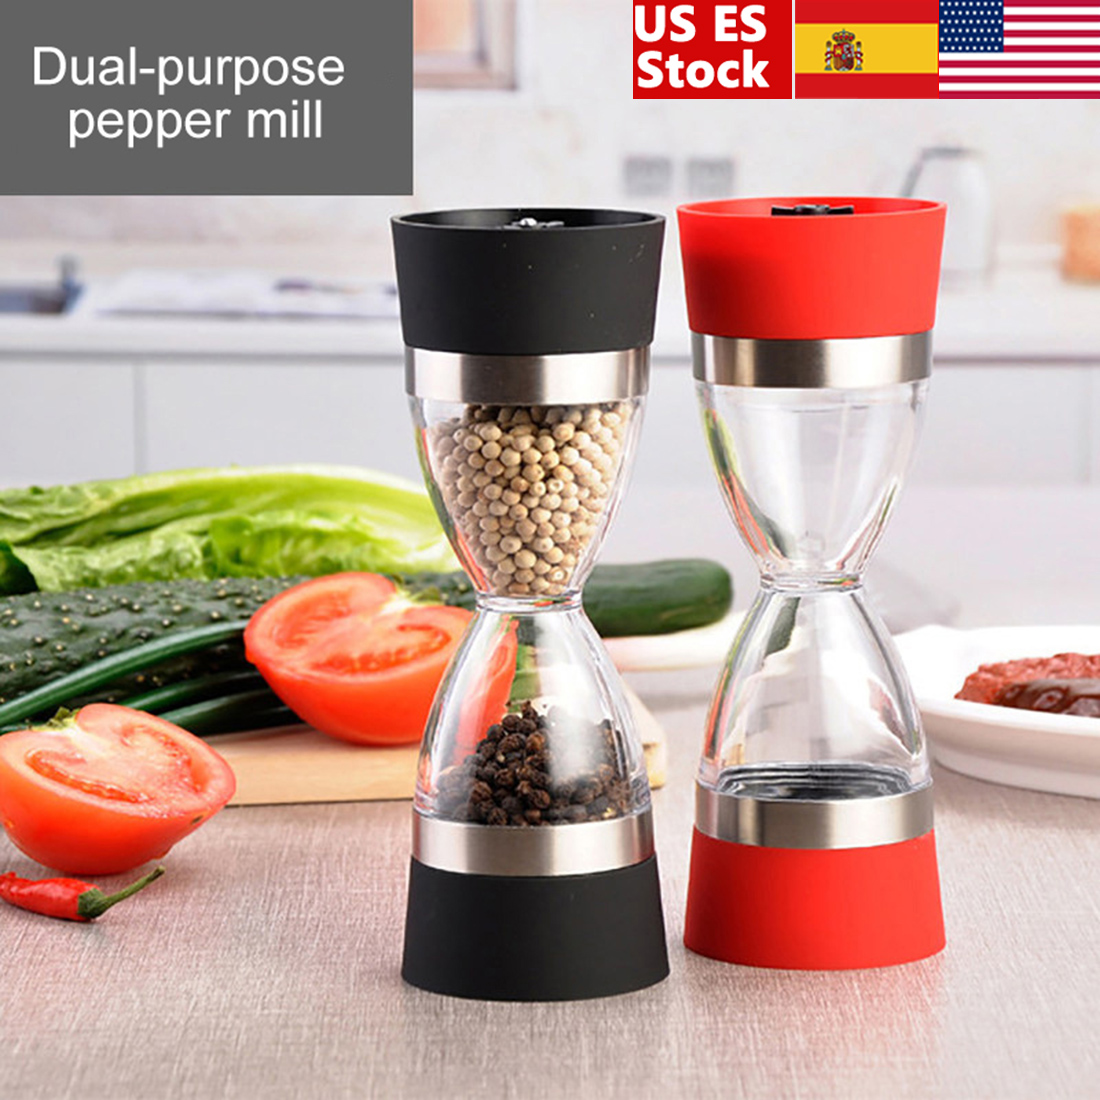 Dual-purpose Pepper Mill Hourglass Shape Dual Salt Pepper Mill Spice Grinder Pepper Shaker For Kitchen Cooking Tools(China)